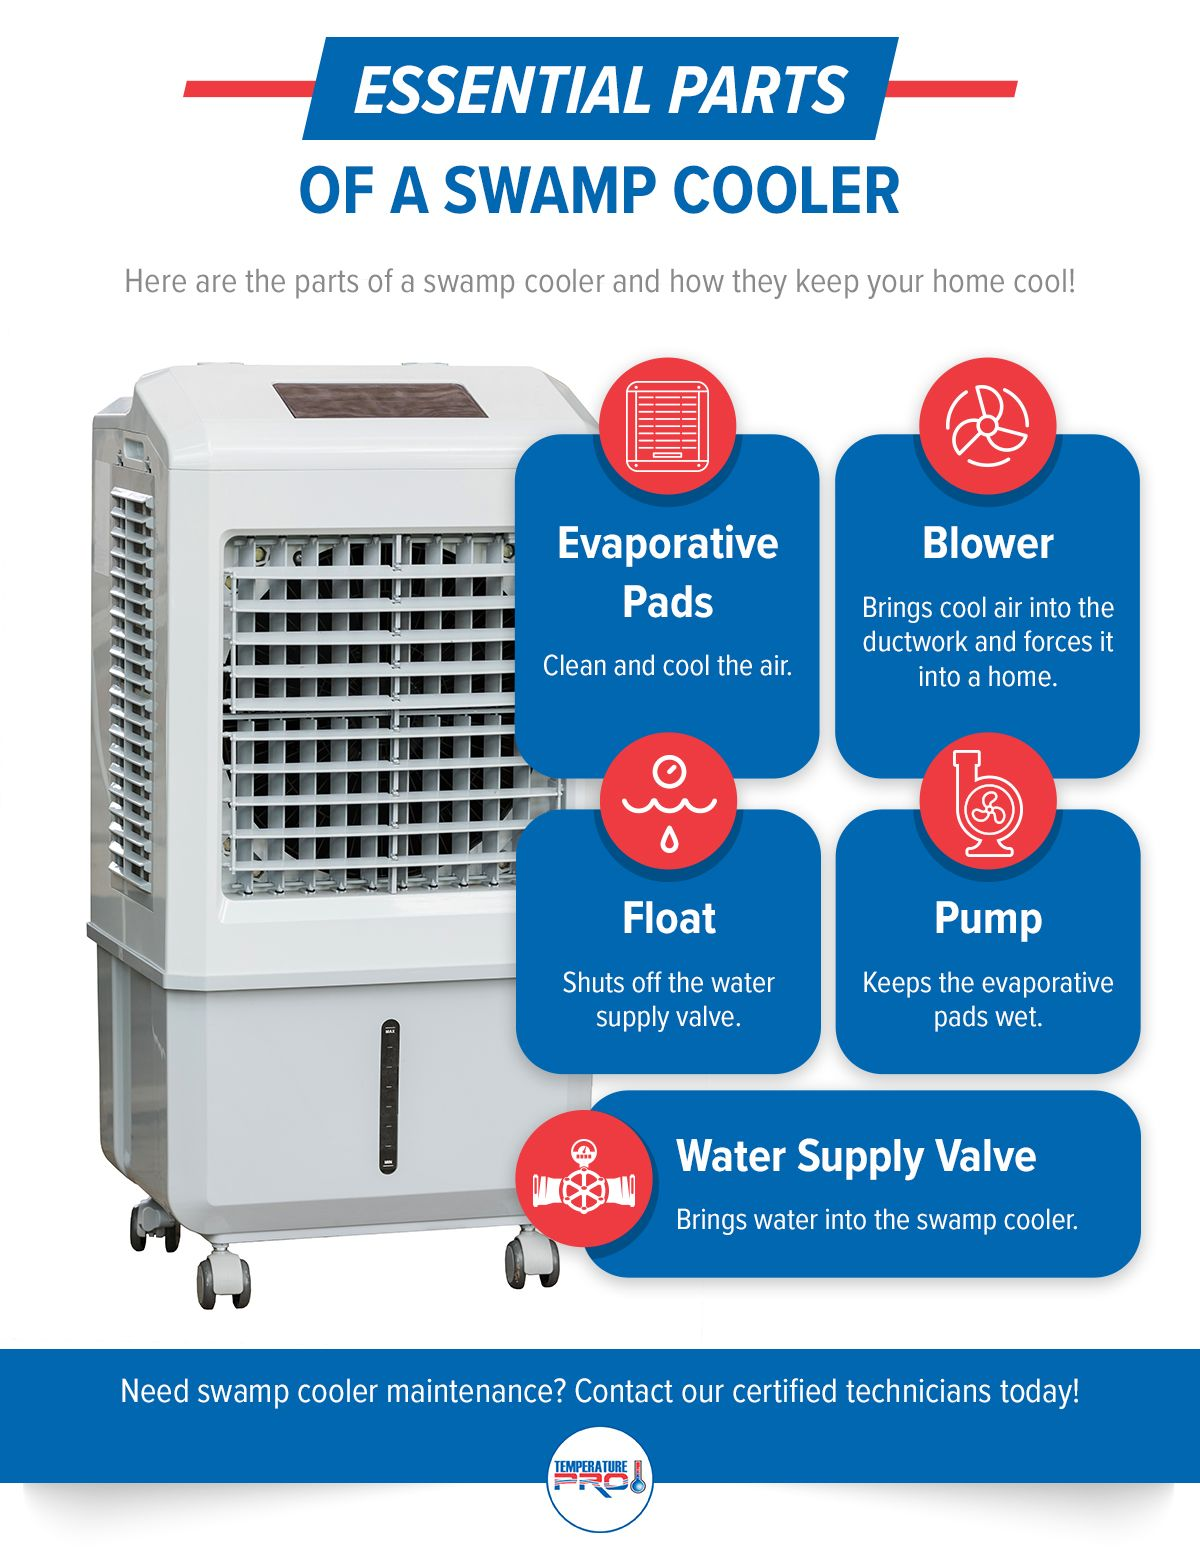 Essential parts of a swamp cooler